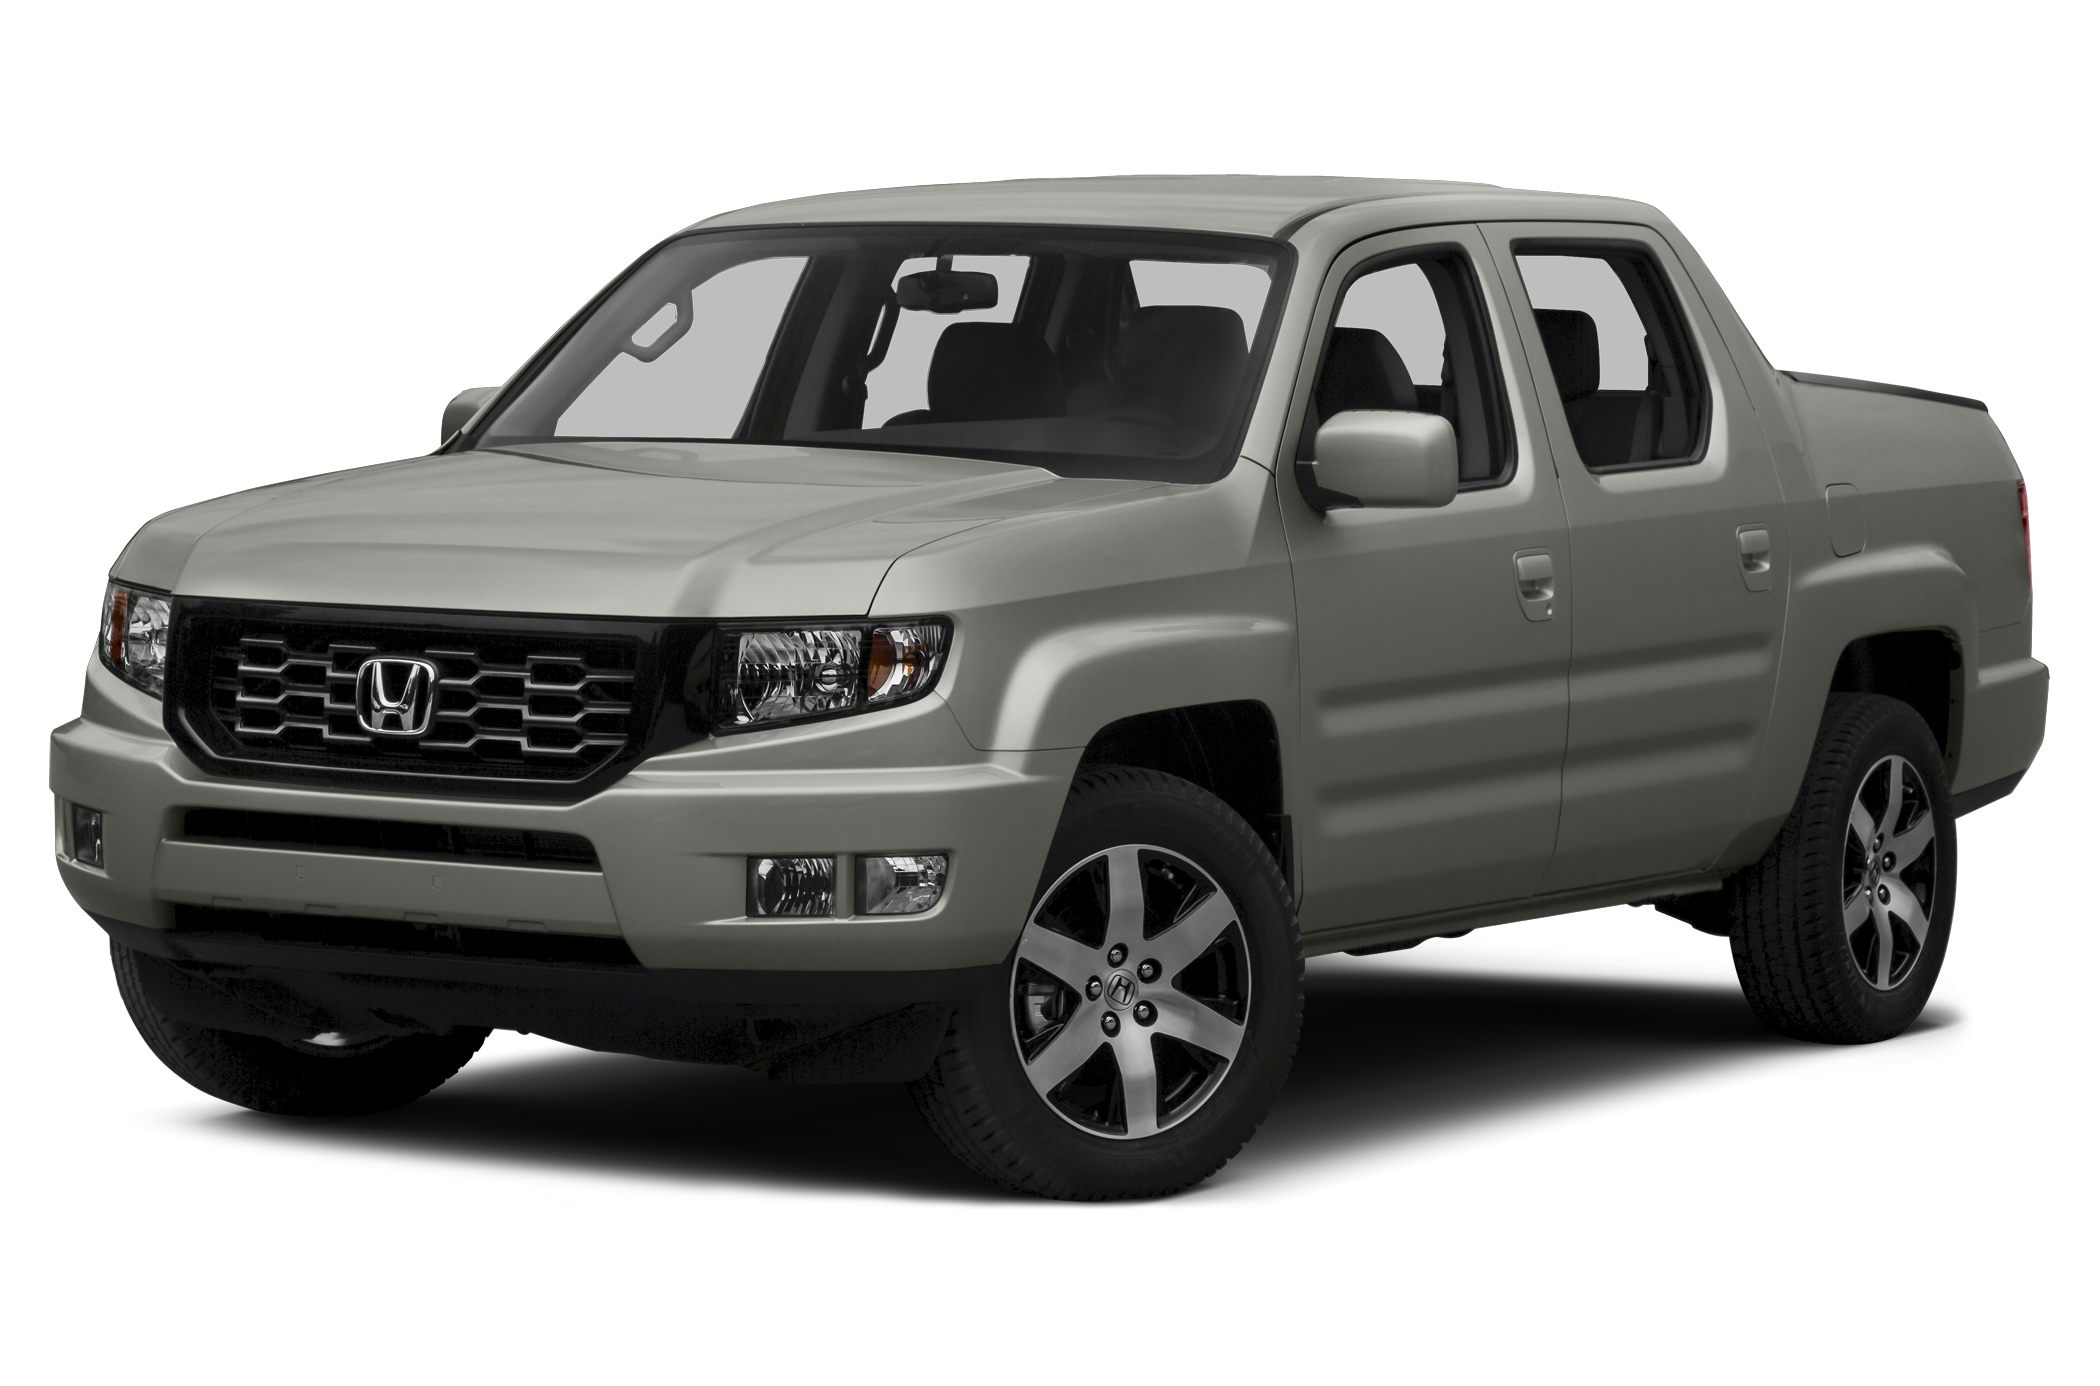 2014 Honda Ridgeline SE Crew Cab Pickup for sale in Kingwood for $34,800 with 9,499 miles.